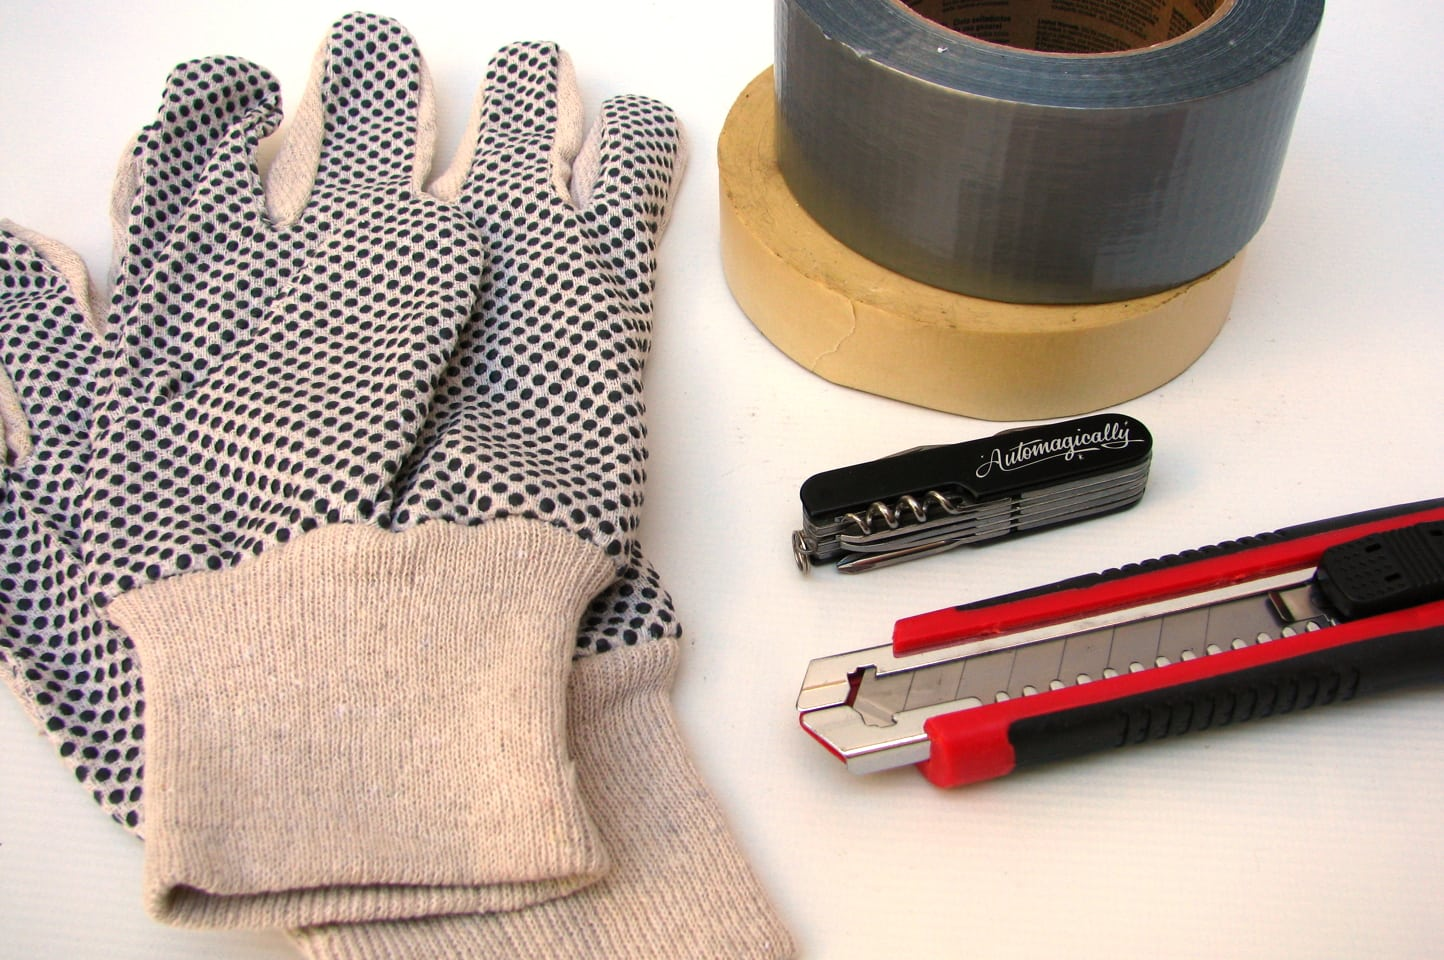 Work Gloves, Knives, and Duct Tape